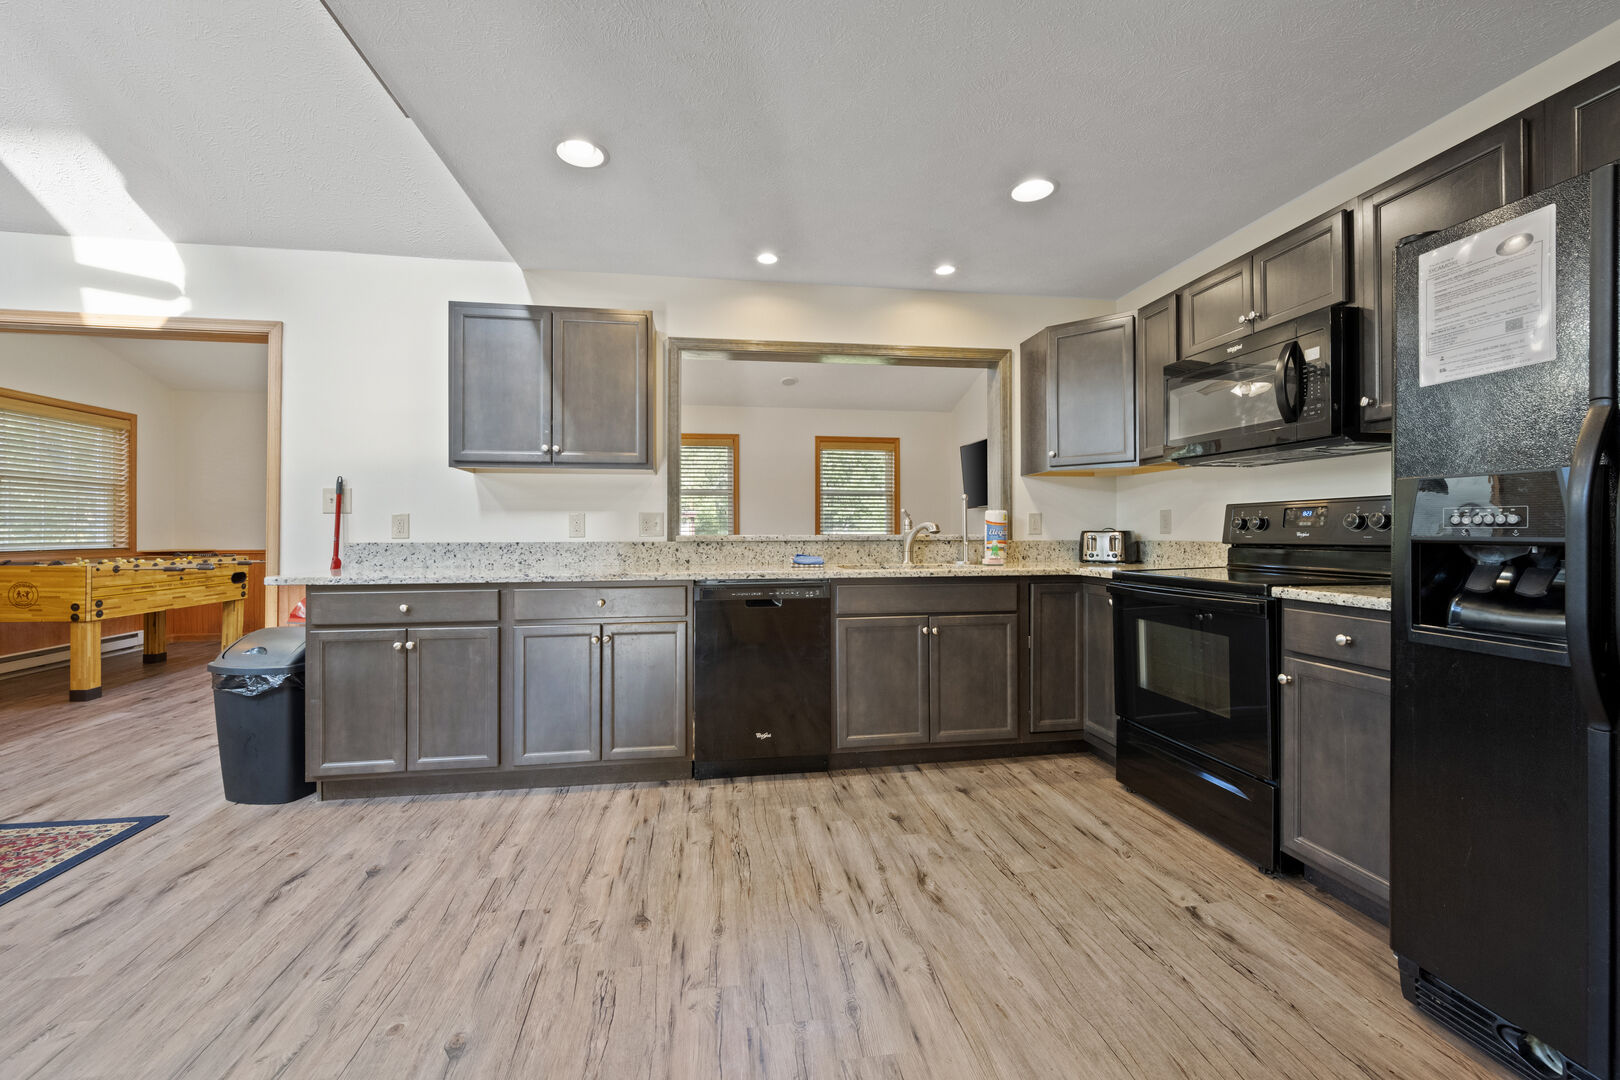 Kitchen area with view of game room.